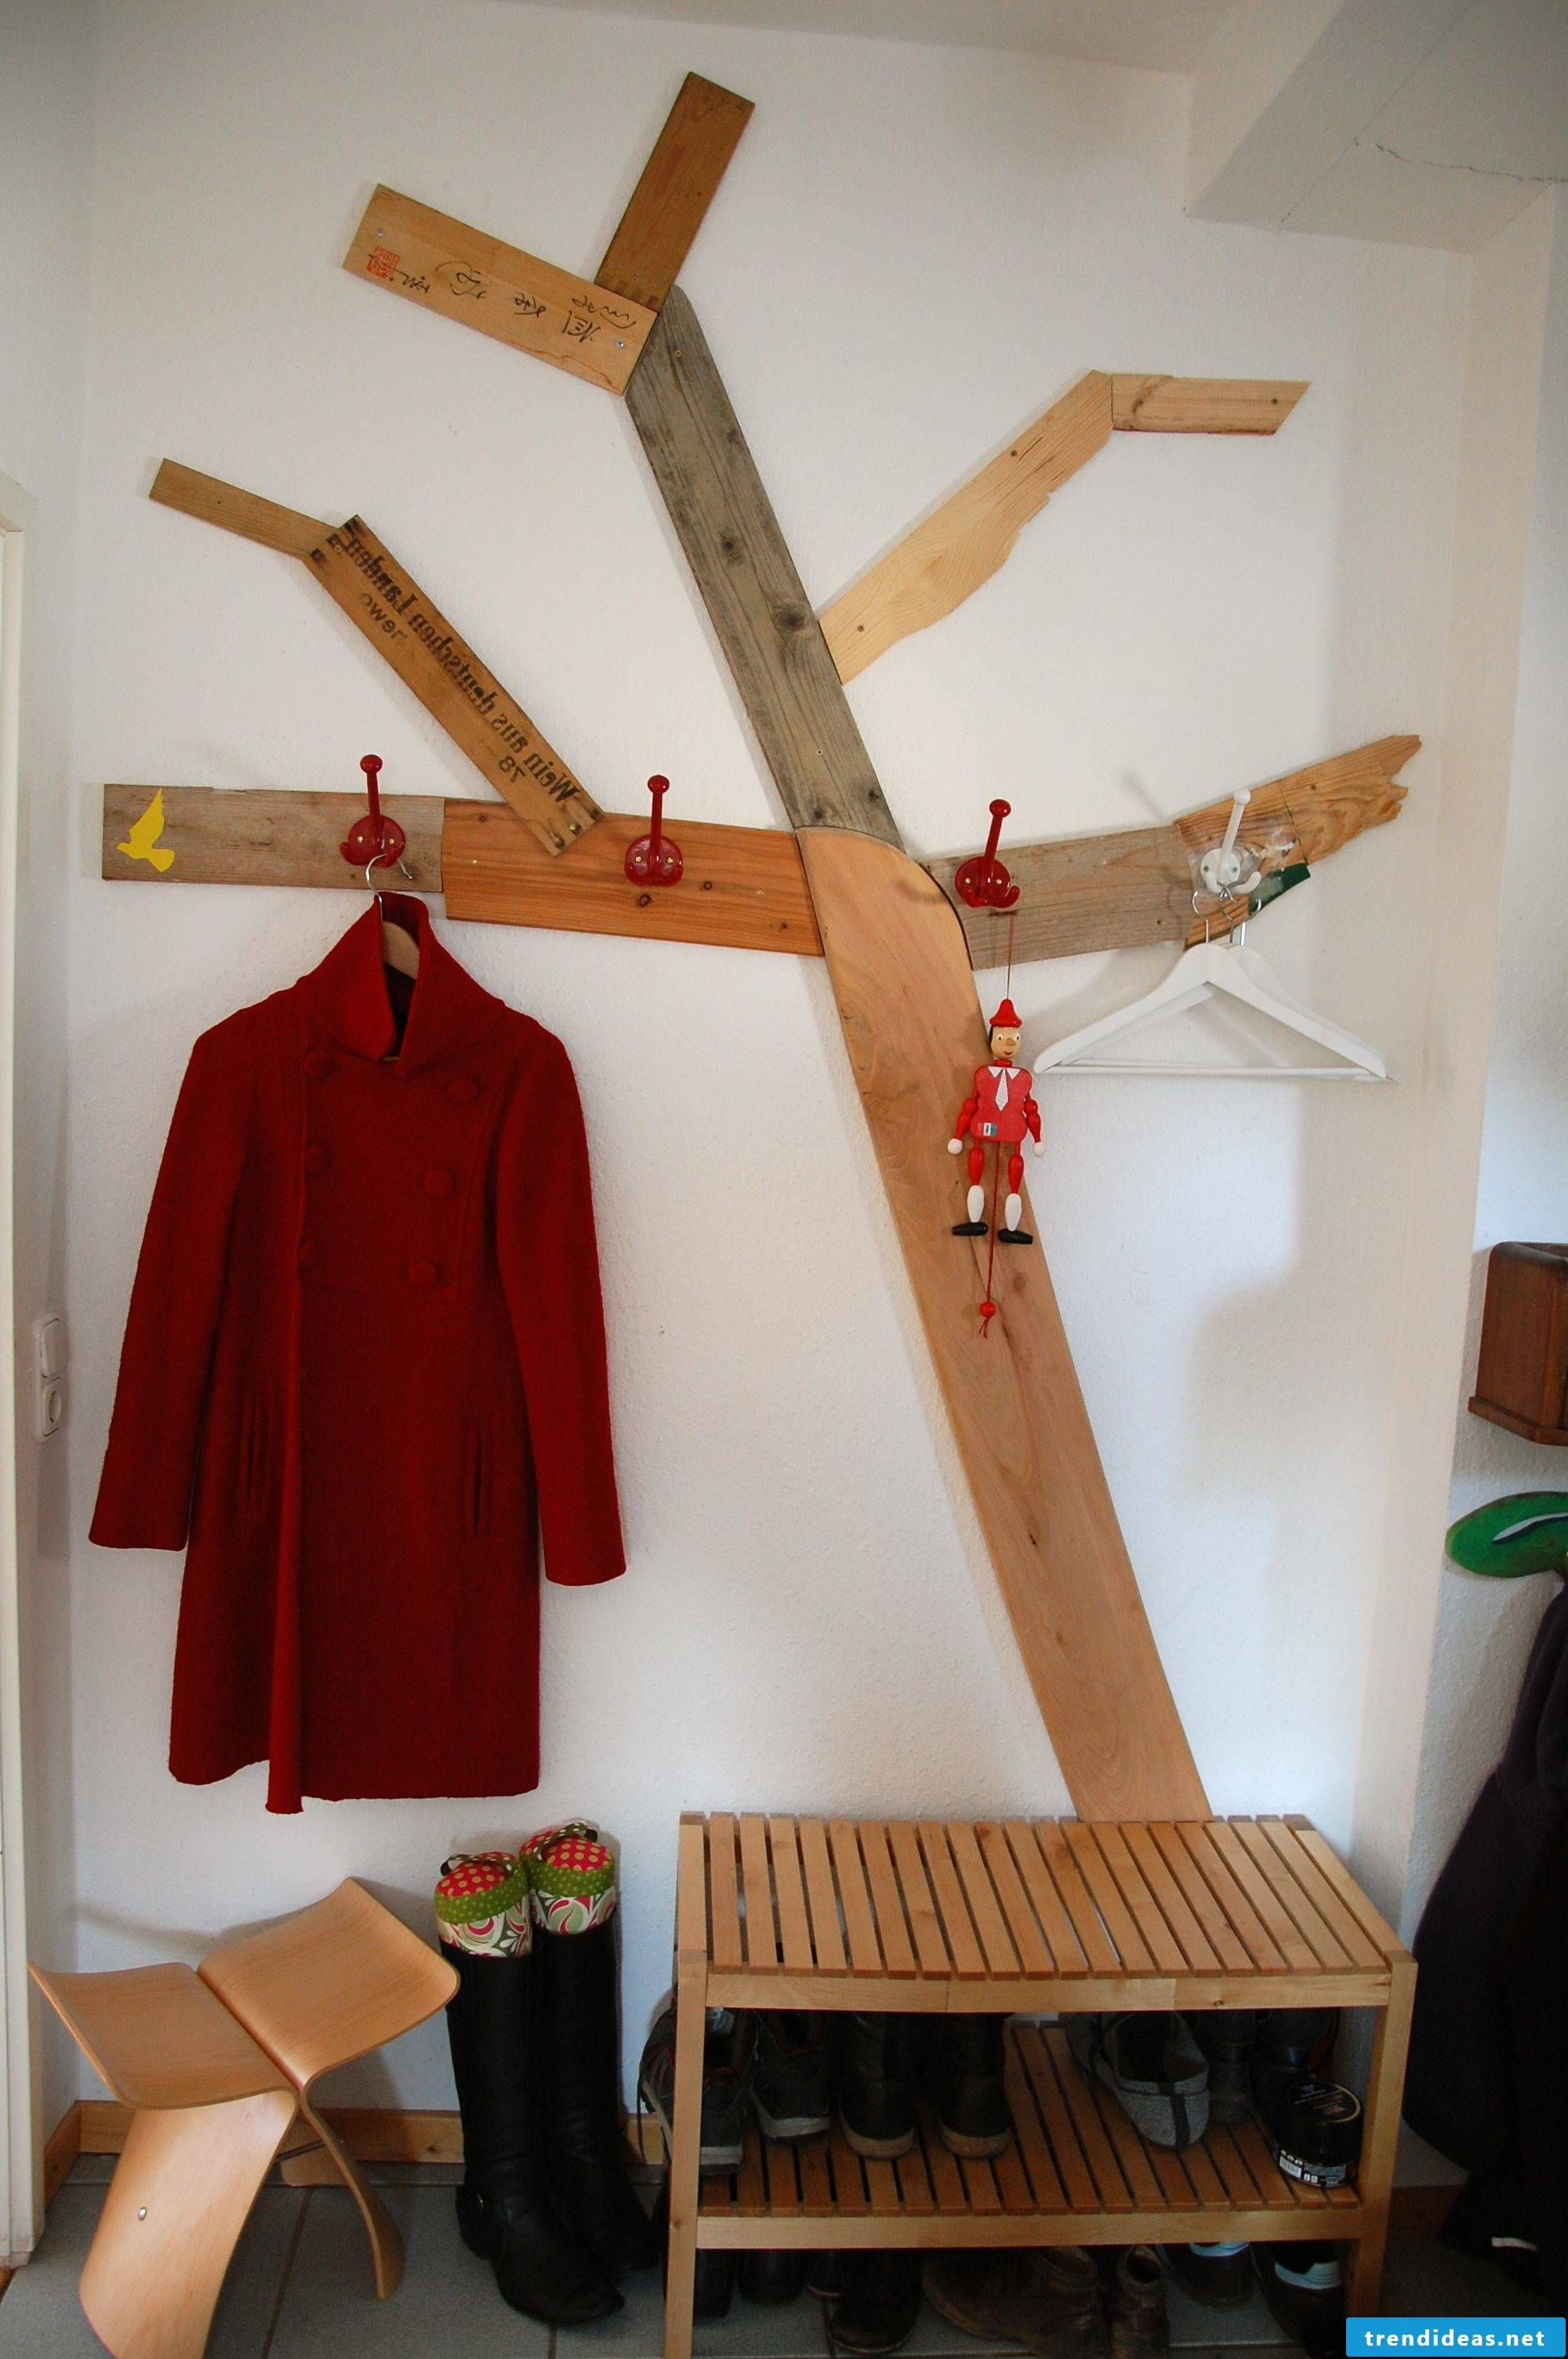 Build your own tree wardrobe from old boards and wooden slats